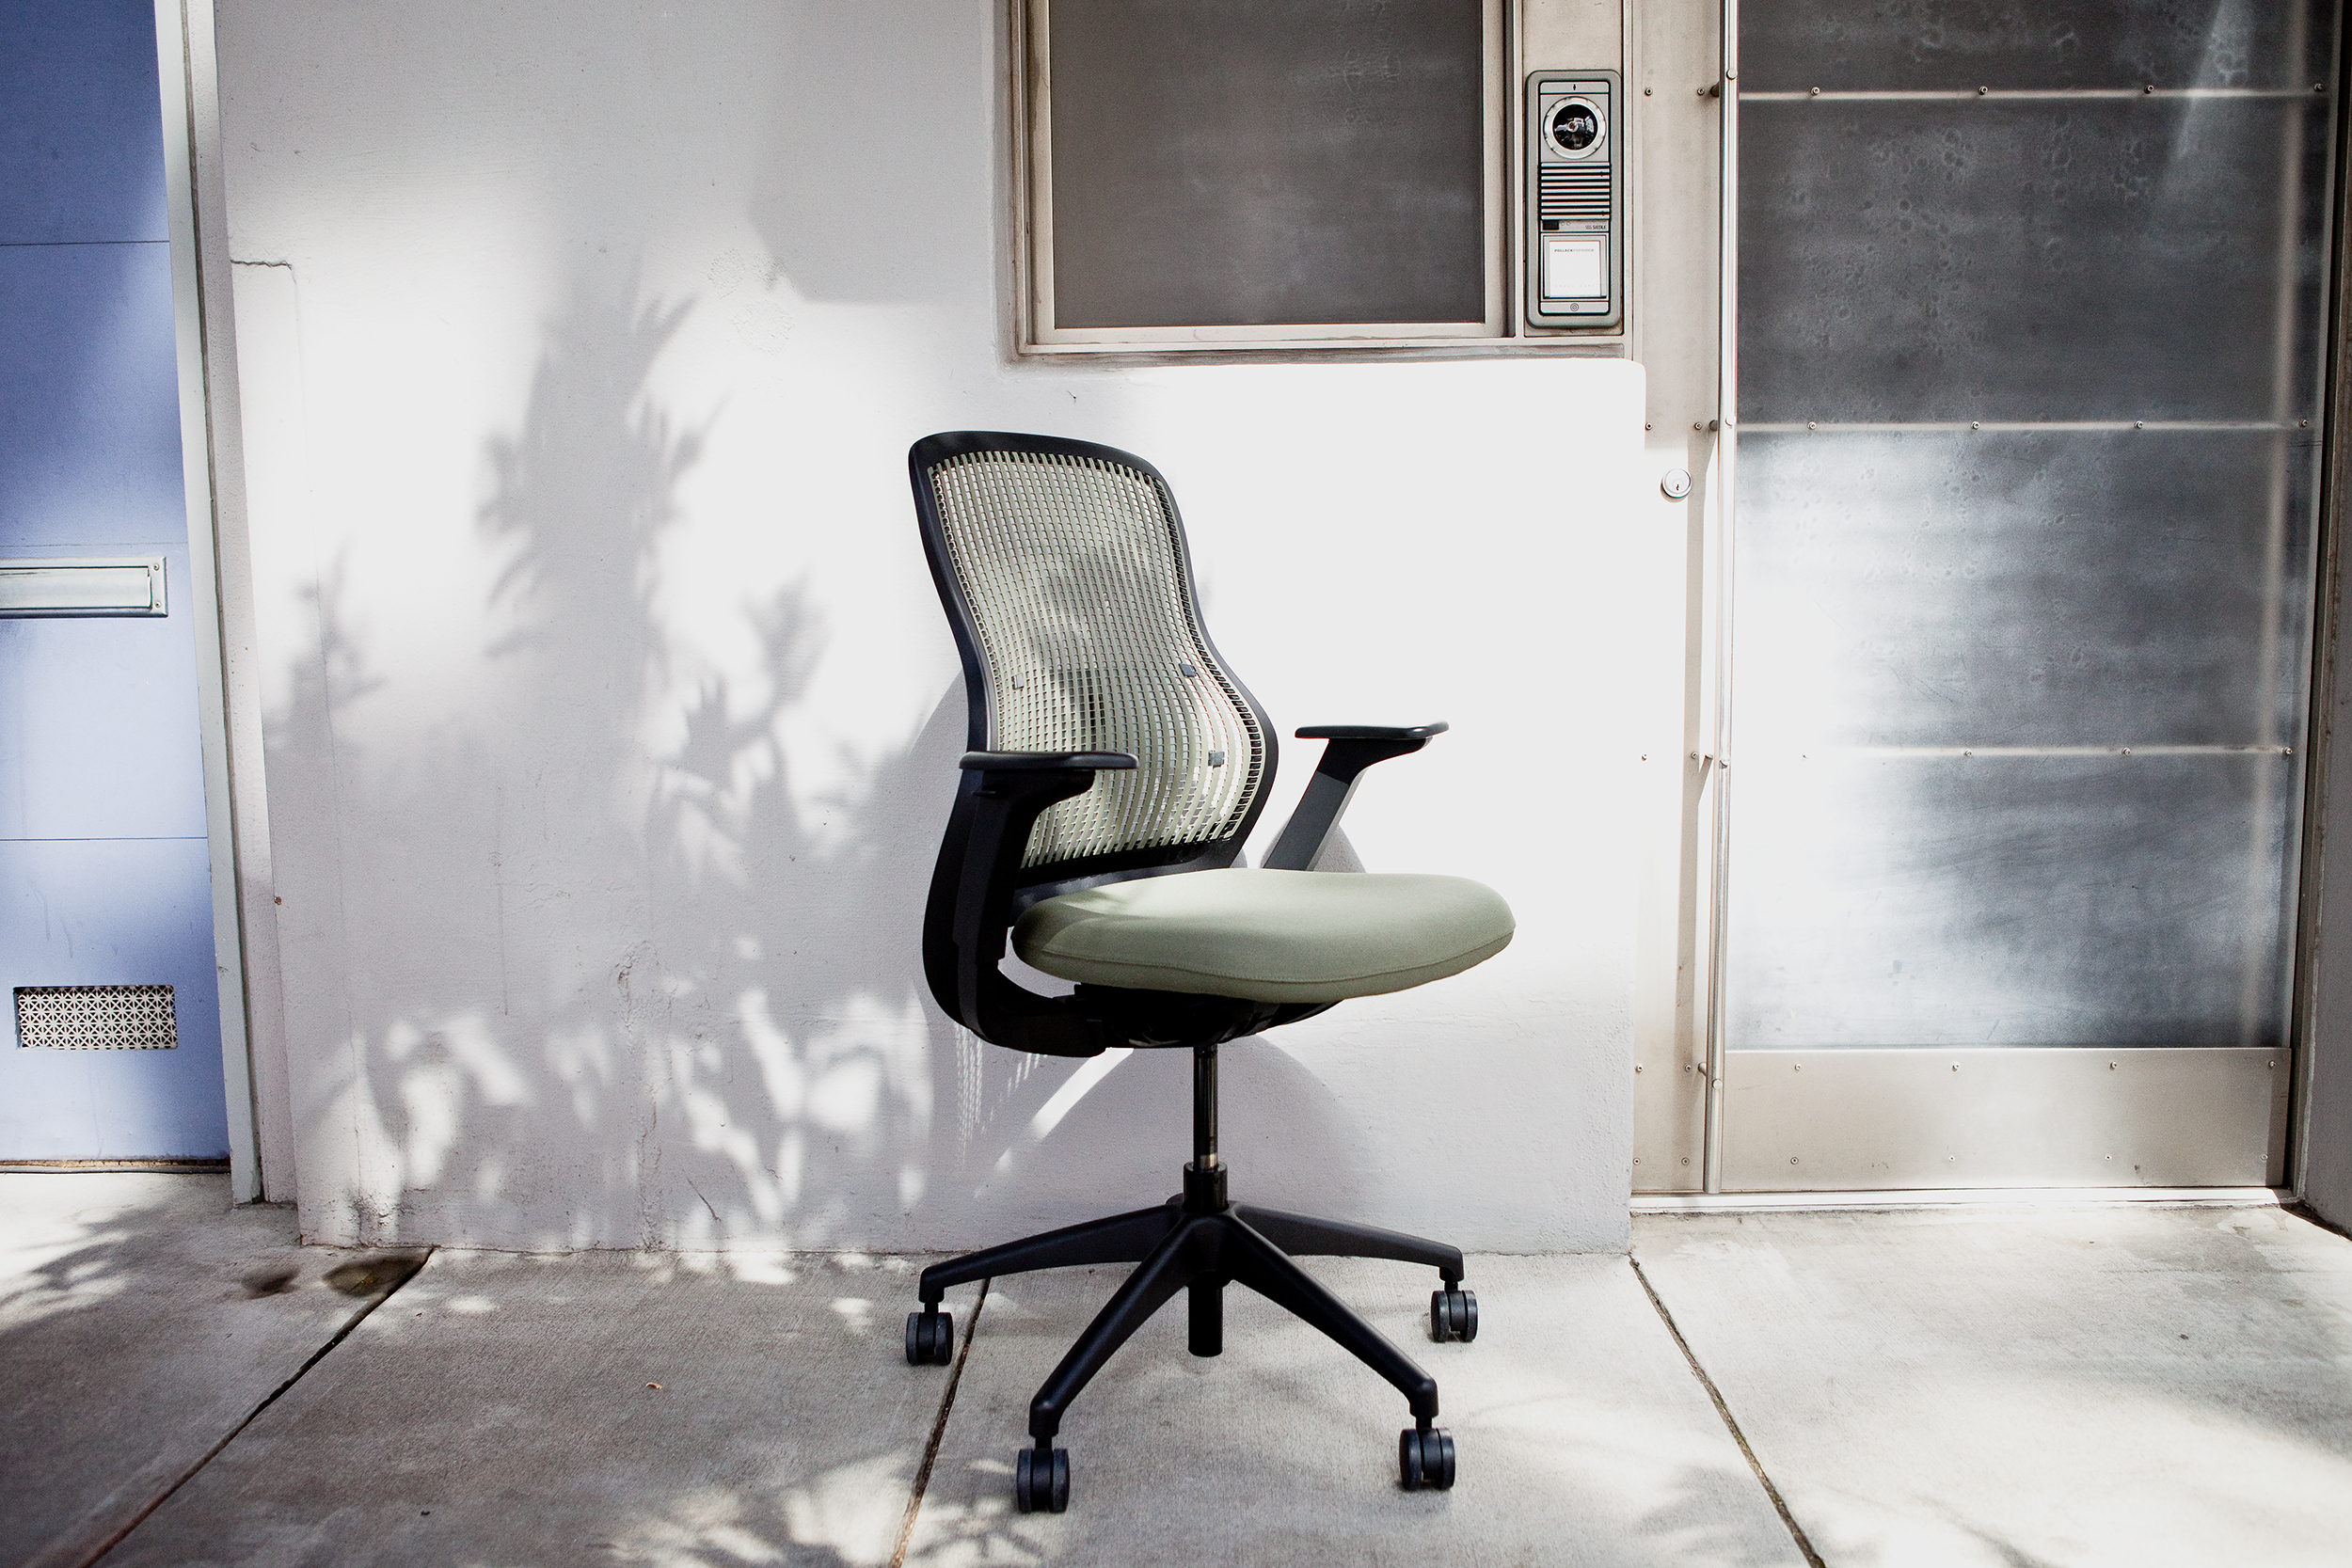 Knoll Regeneration Chair Review Knoll Regeneration Desk Chair Wired